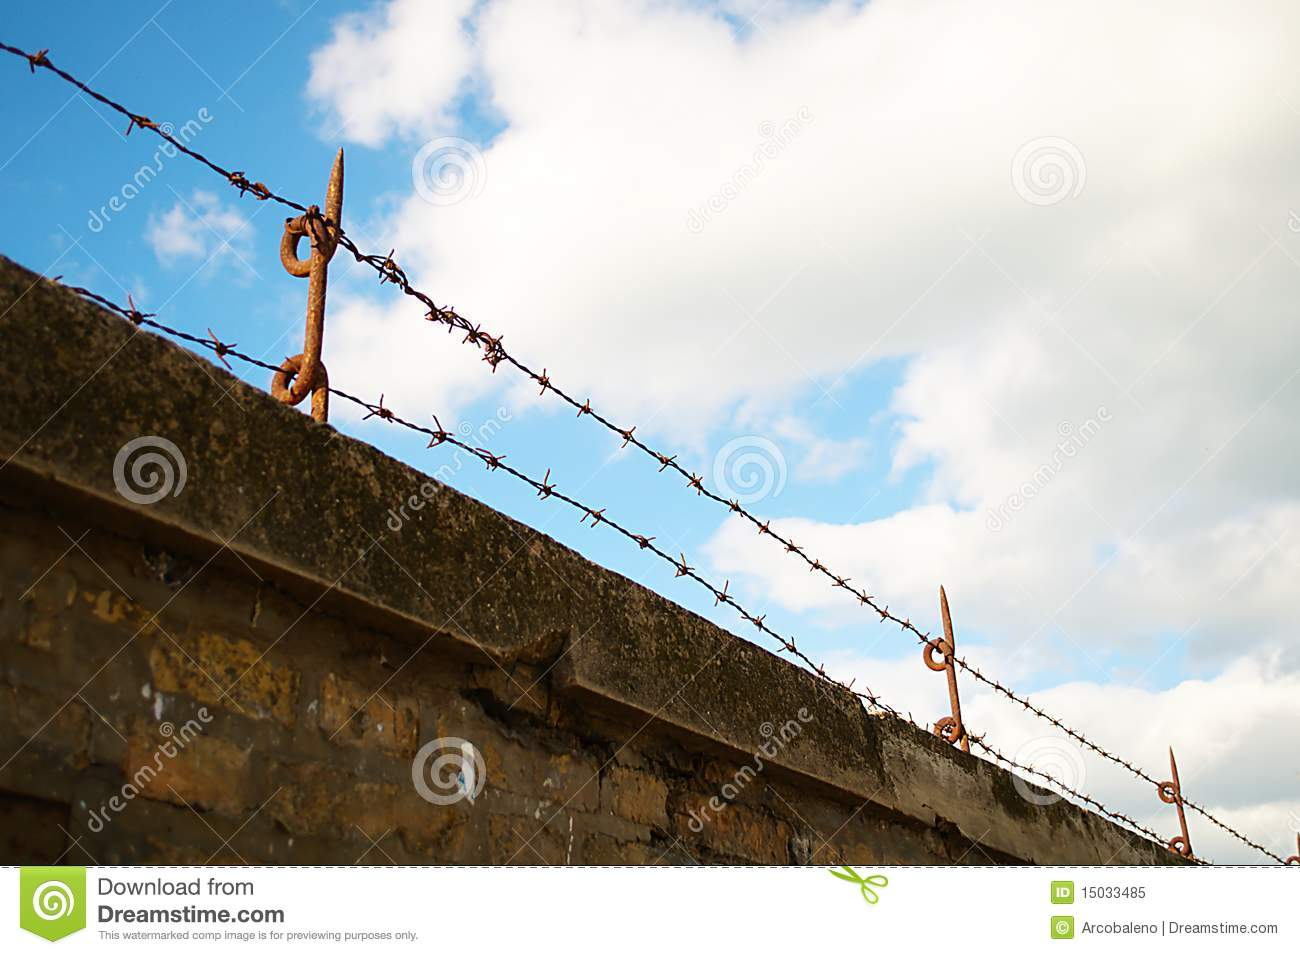 Barbed Wire Wall : Barbed wire wall royalty free stock photo image